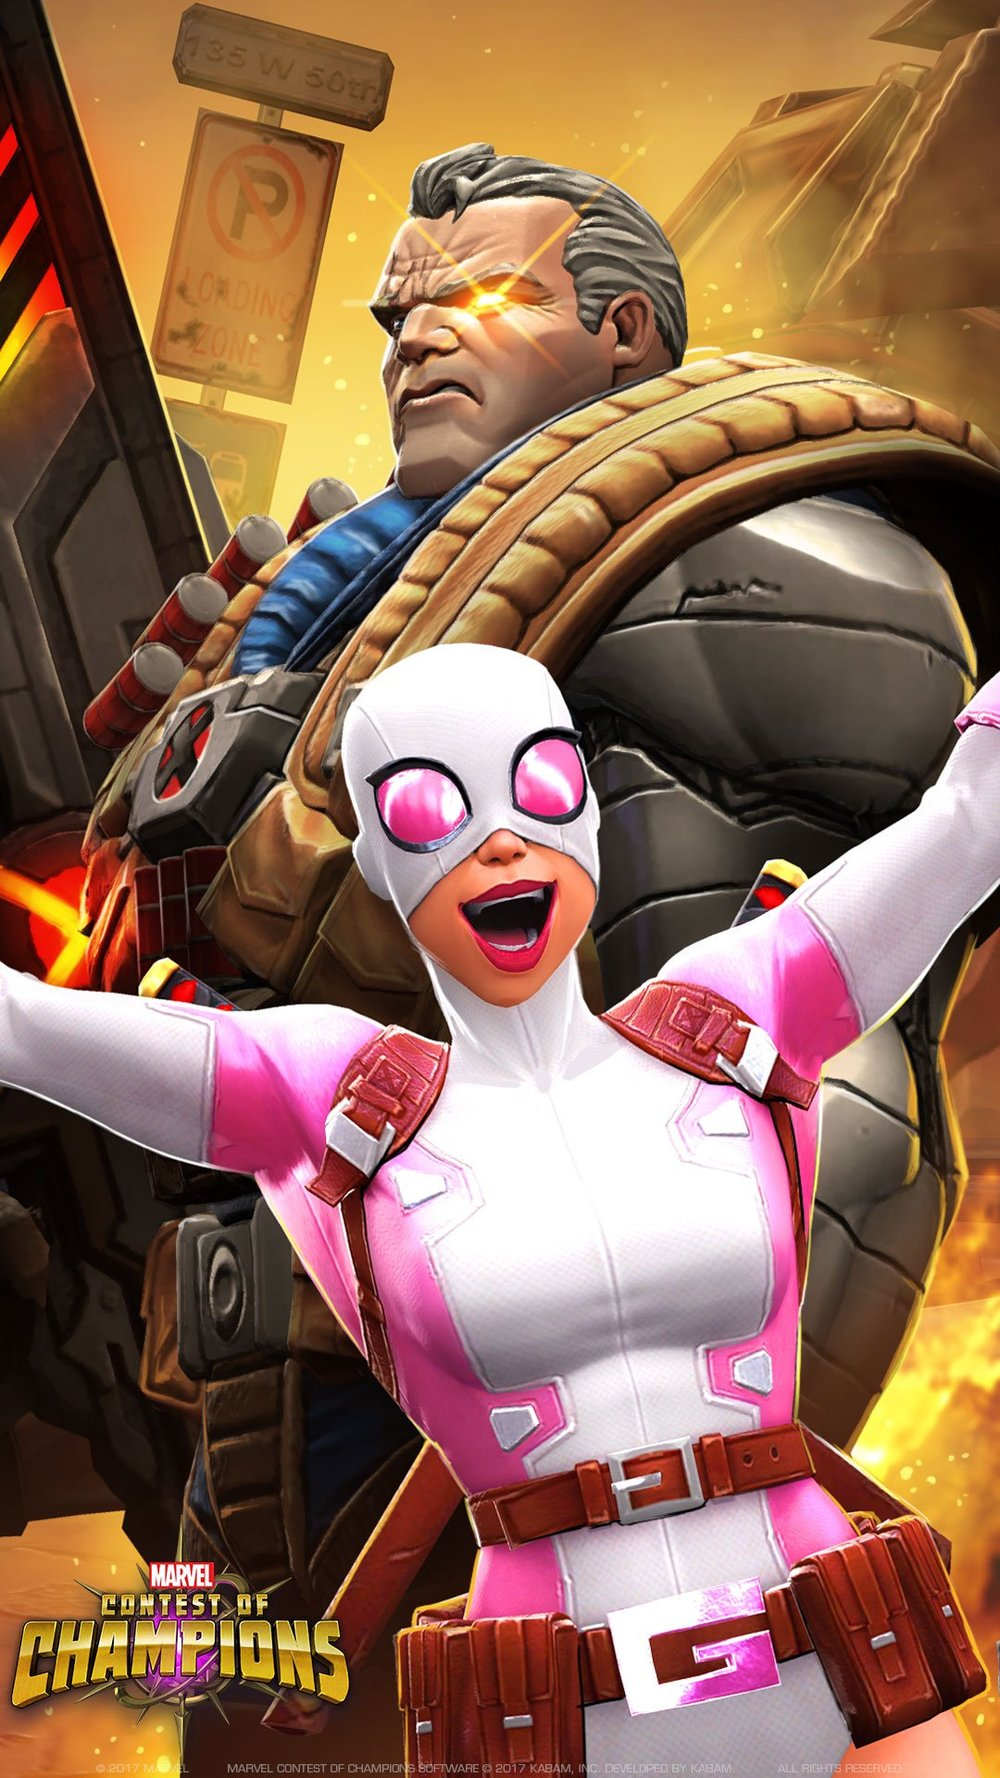 Gwenpool: Agent of C.A.B.L.E.